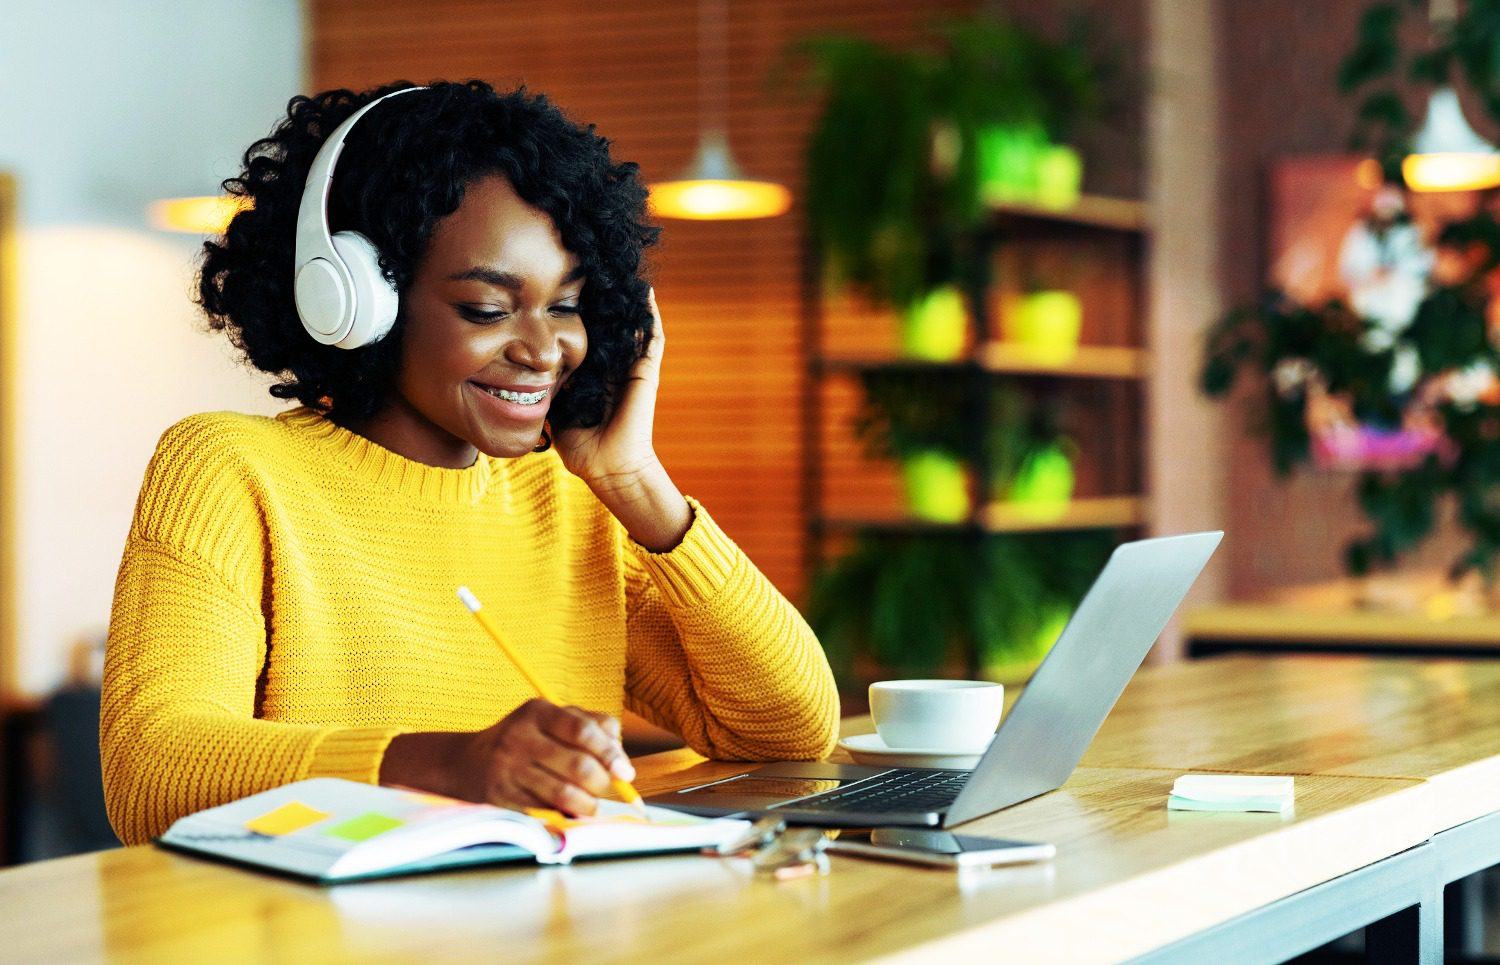 Black woman wearing headphones looking at laptop, smiling, and writing something down.